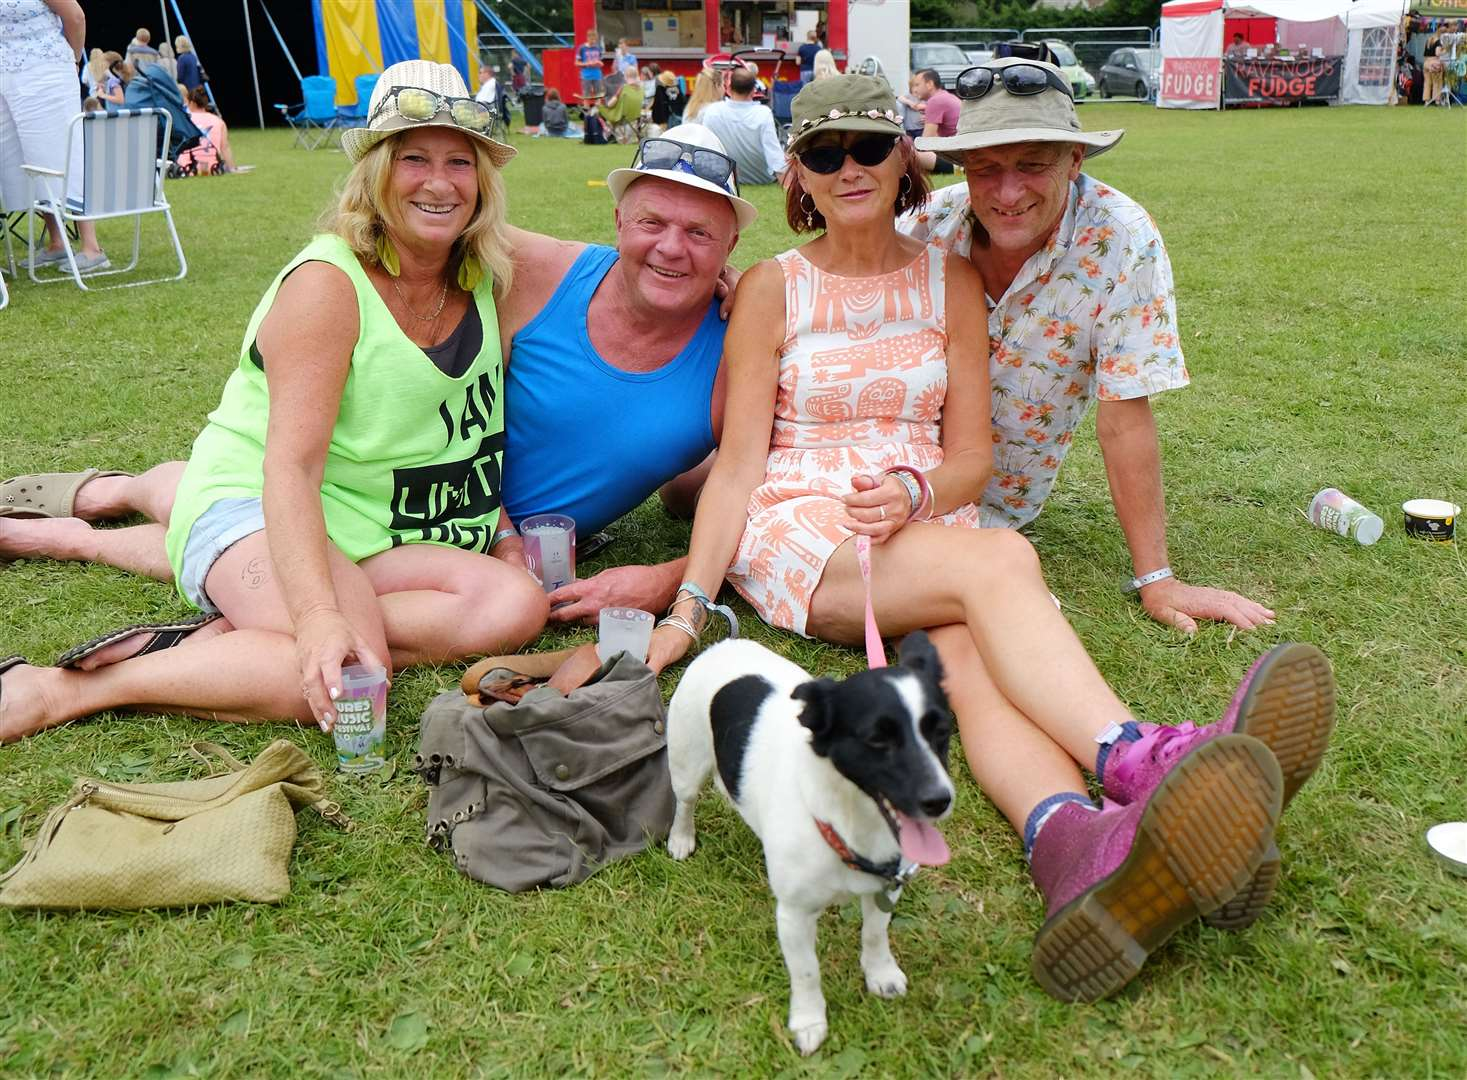 Bures Music Festival - (L-R)Julie Grimwood, Paul Grimwood, Dolly the dog, Jayne Evans and Carl Brown.Pic - Richard Marsham. (13766260)